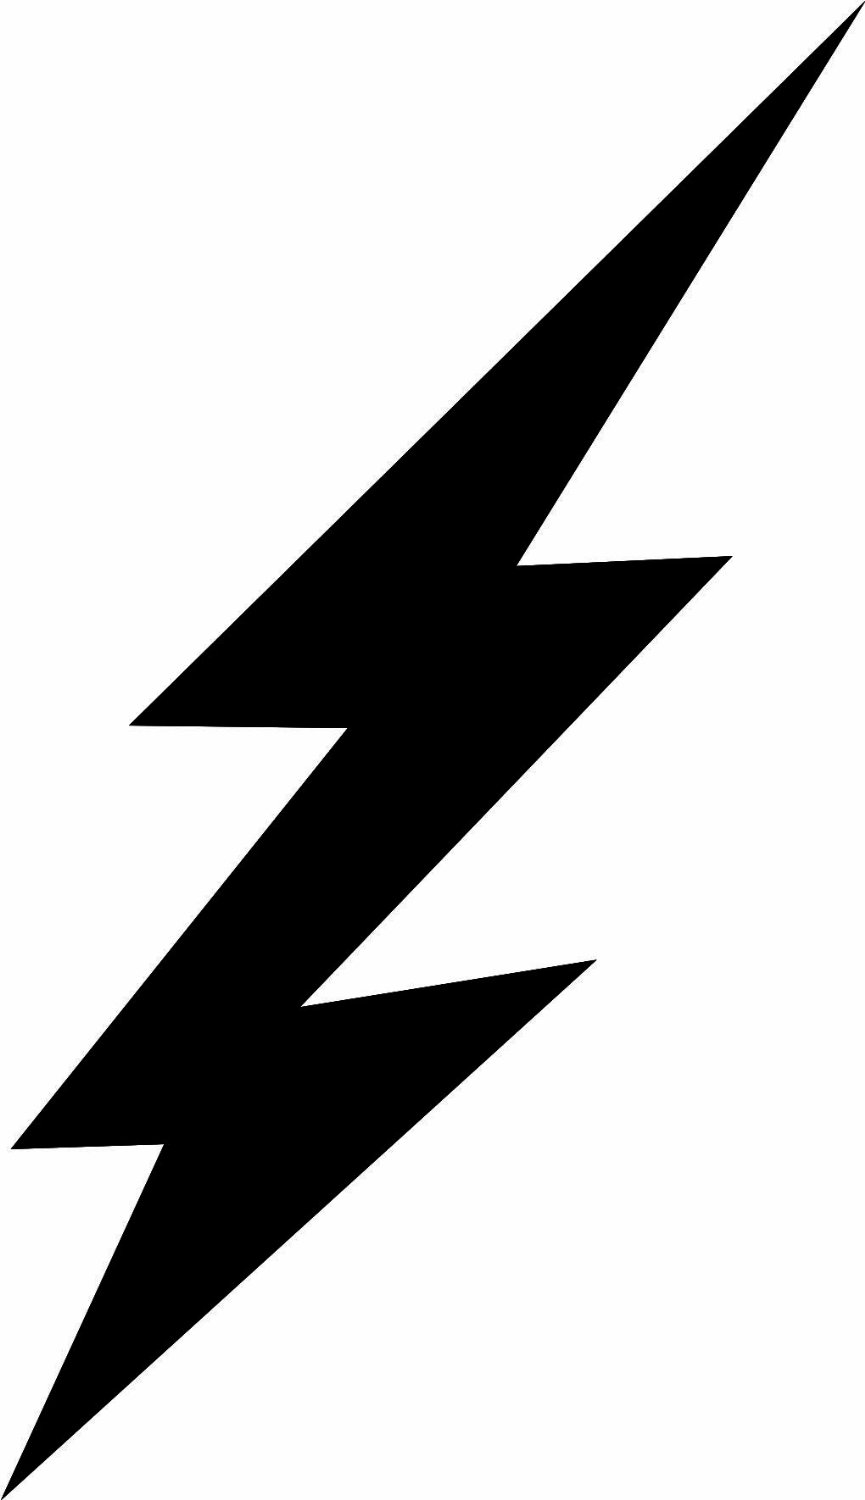 Free Lightning Bolt, Download Free Clip Art, Free Clip Art.